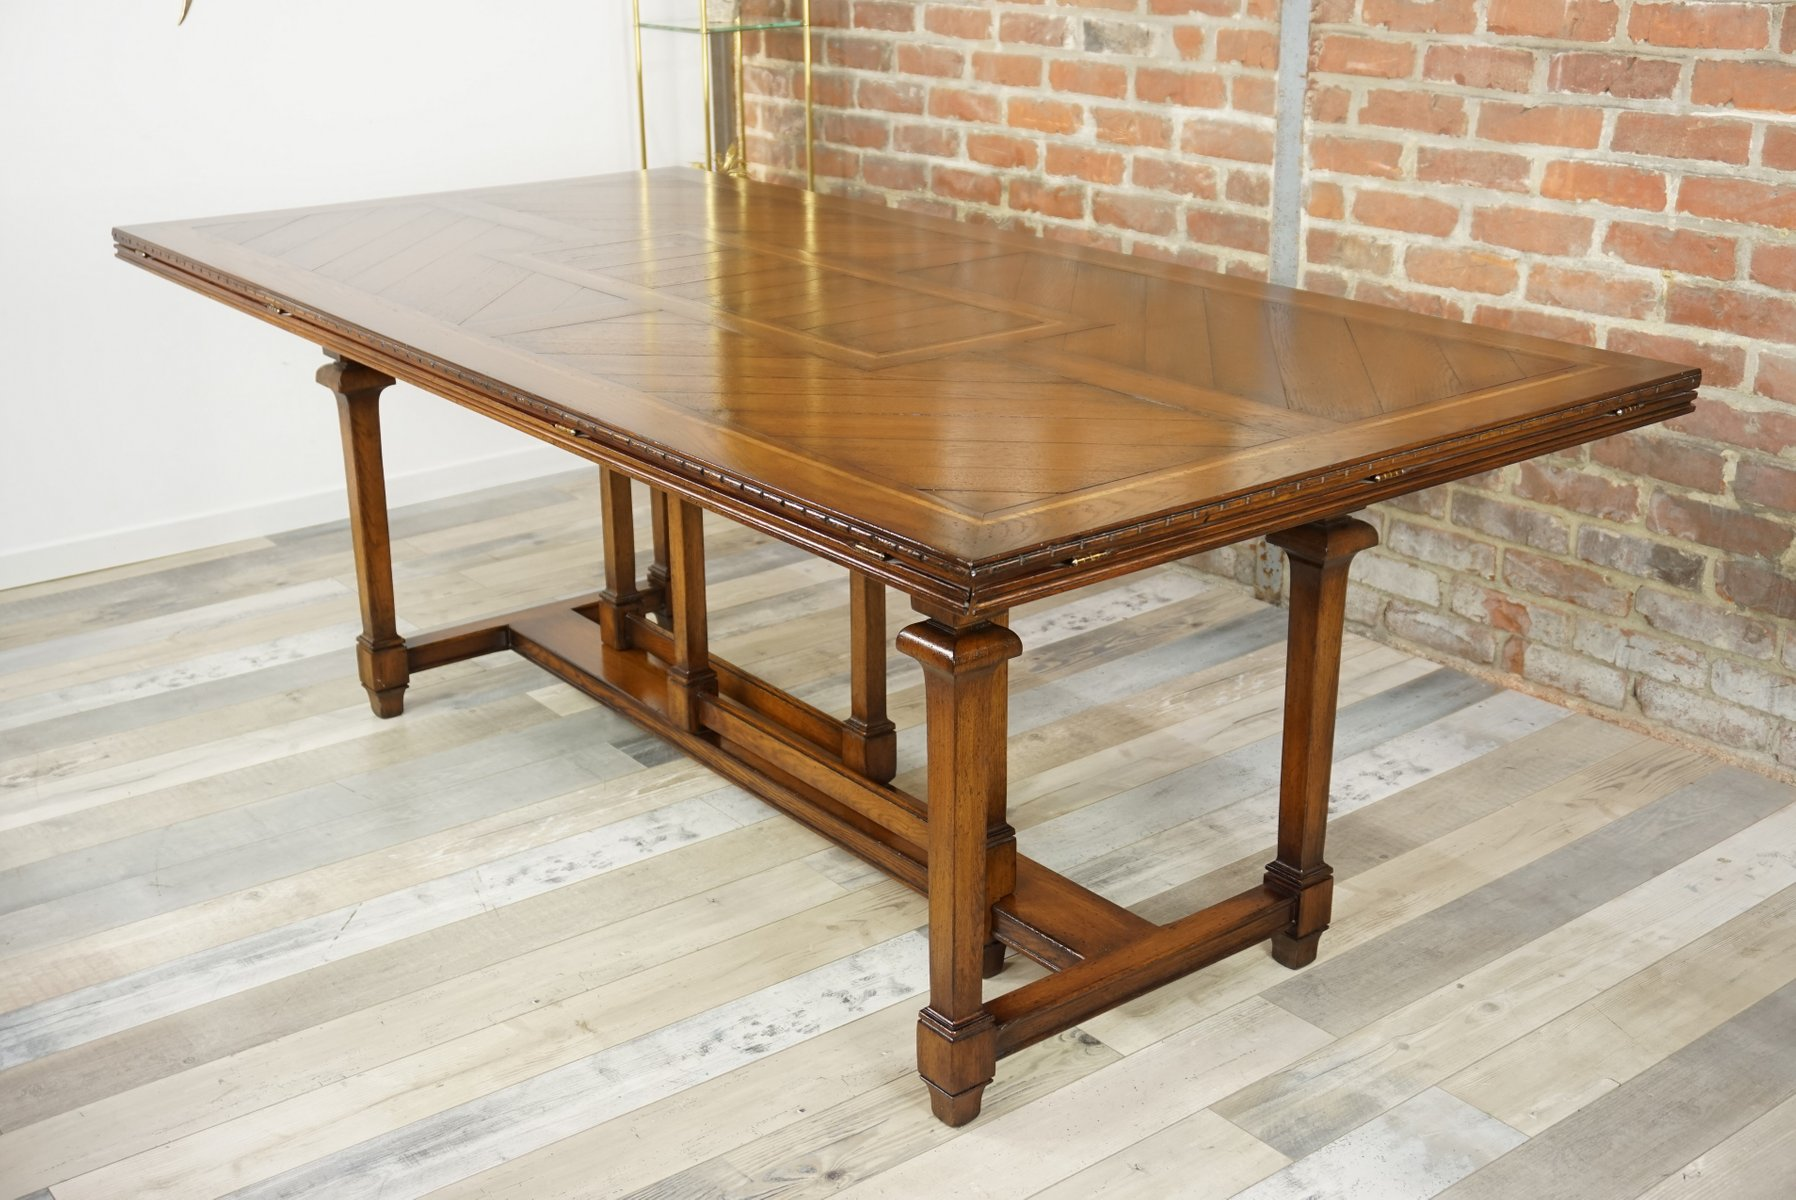 Superb Vintage Wooden Marquetry Modular Dining Table For Sale At